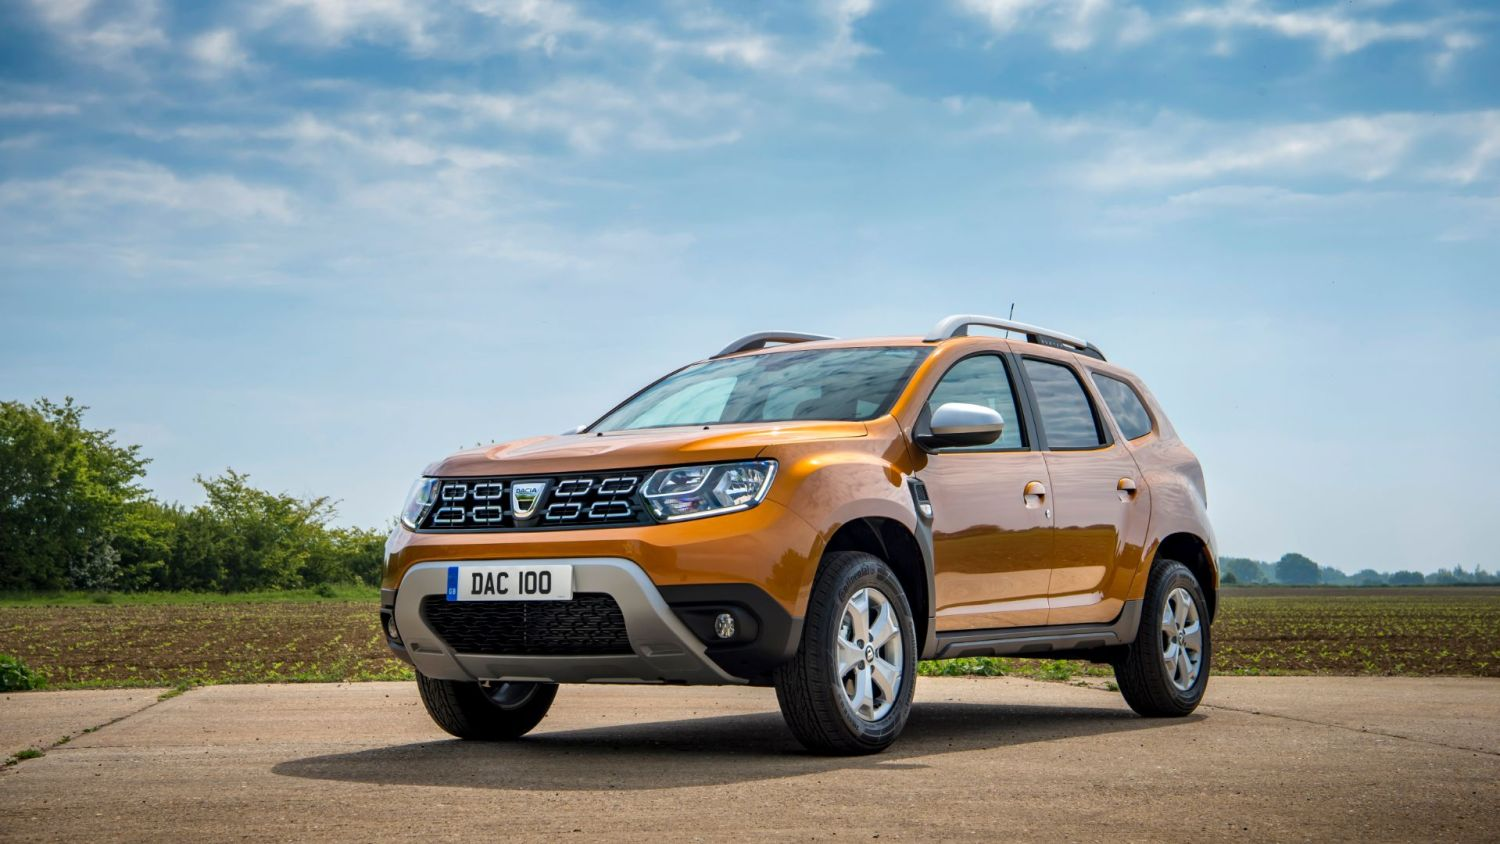 Dacia Duster is now more expensive